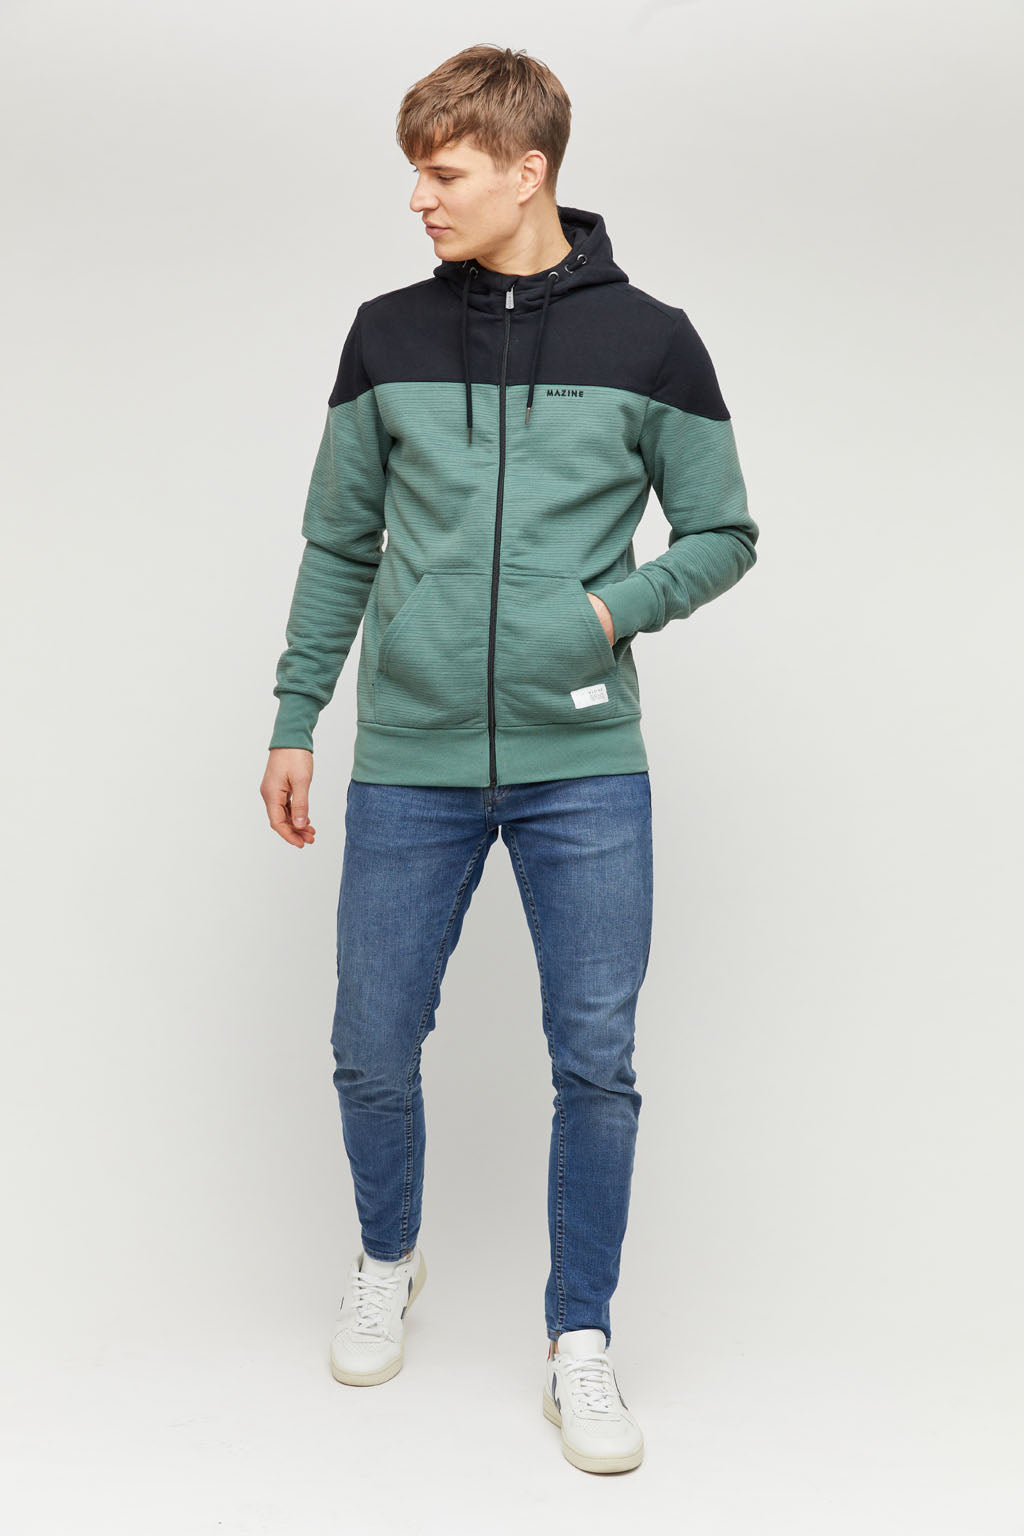 Neston Heavy Zipper